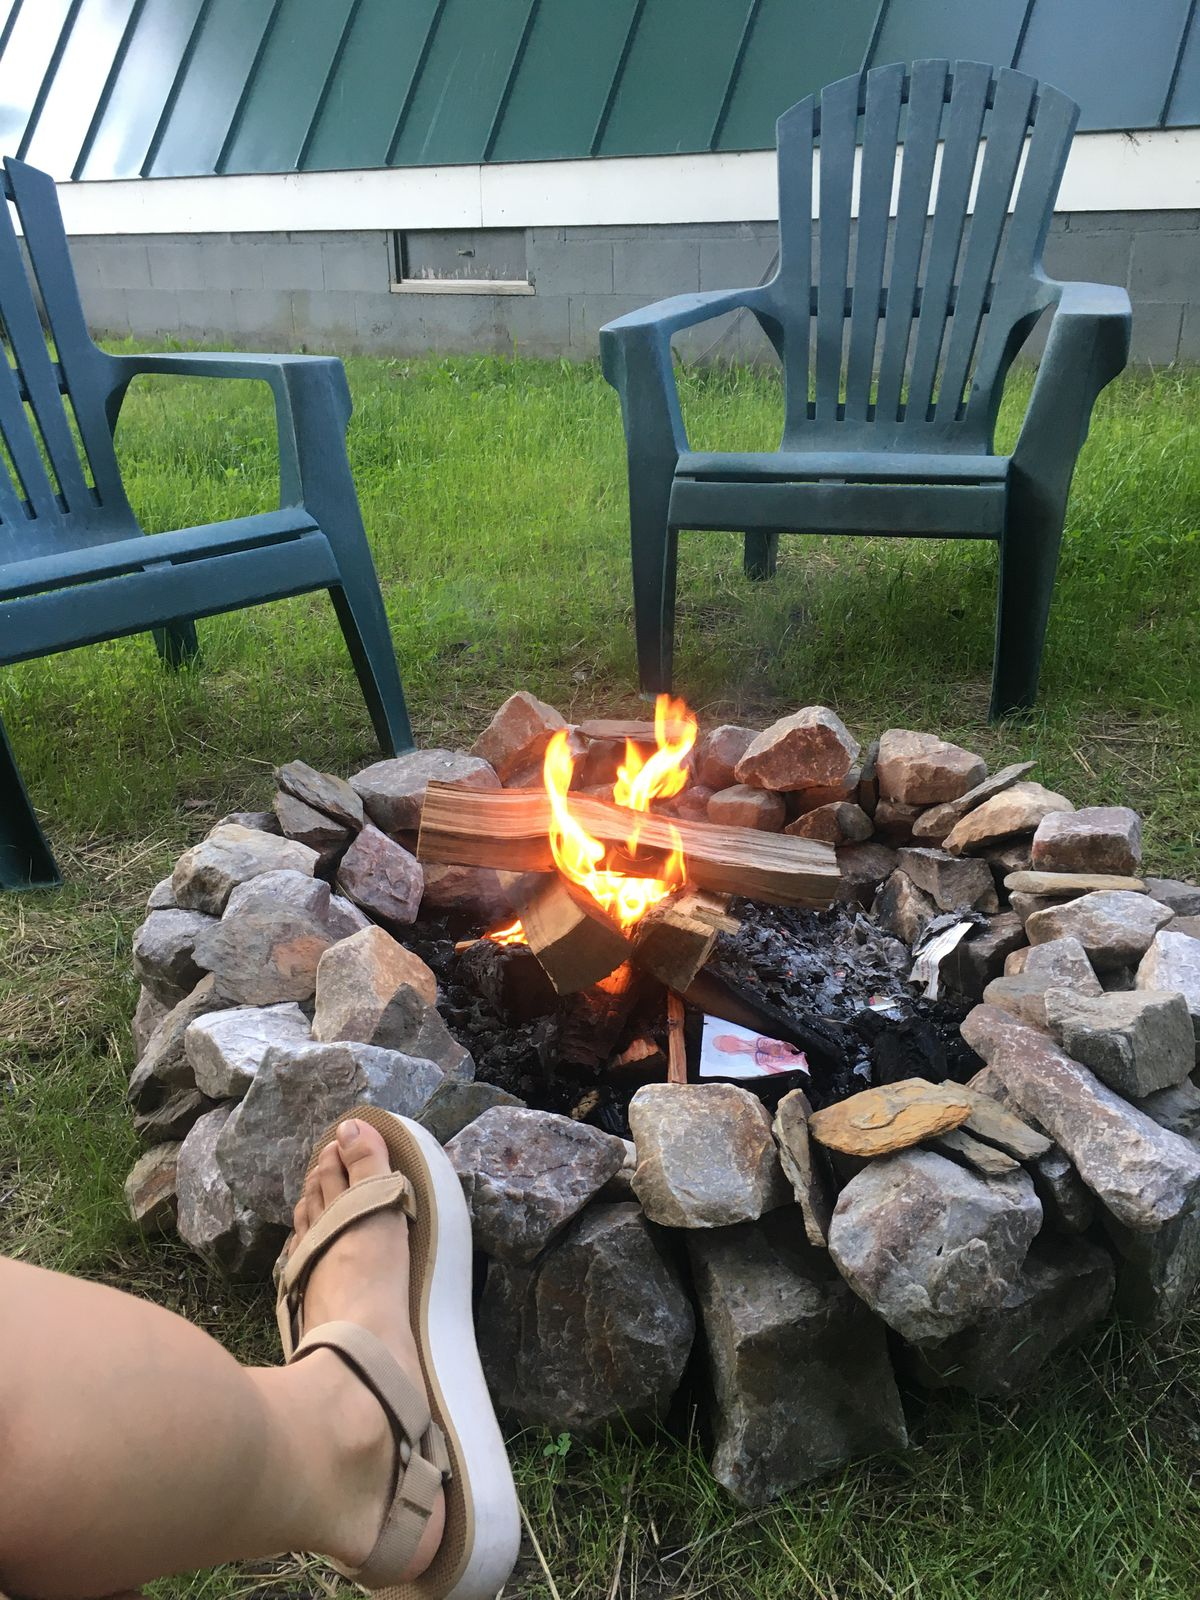 A campfire burns next to the cabin, with two chairs and the author's foot in view.